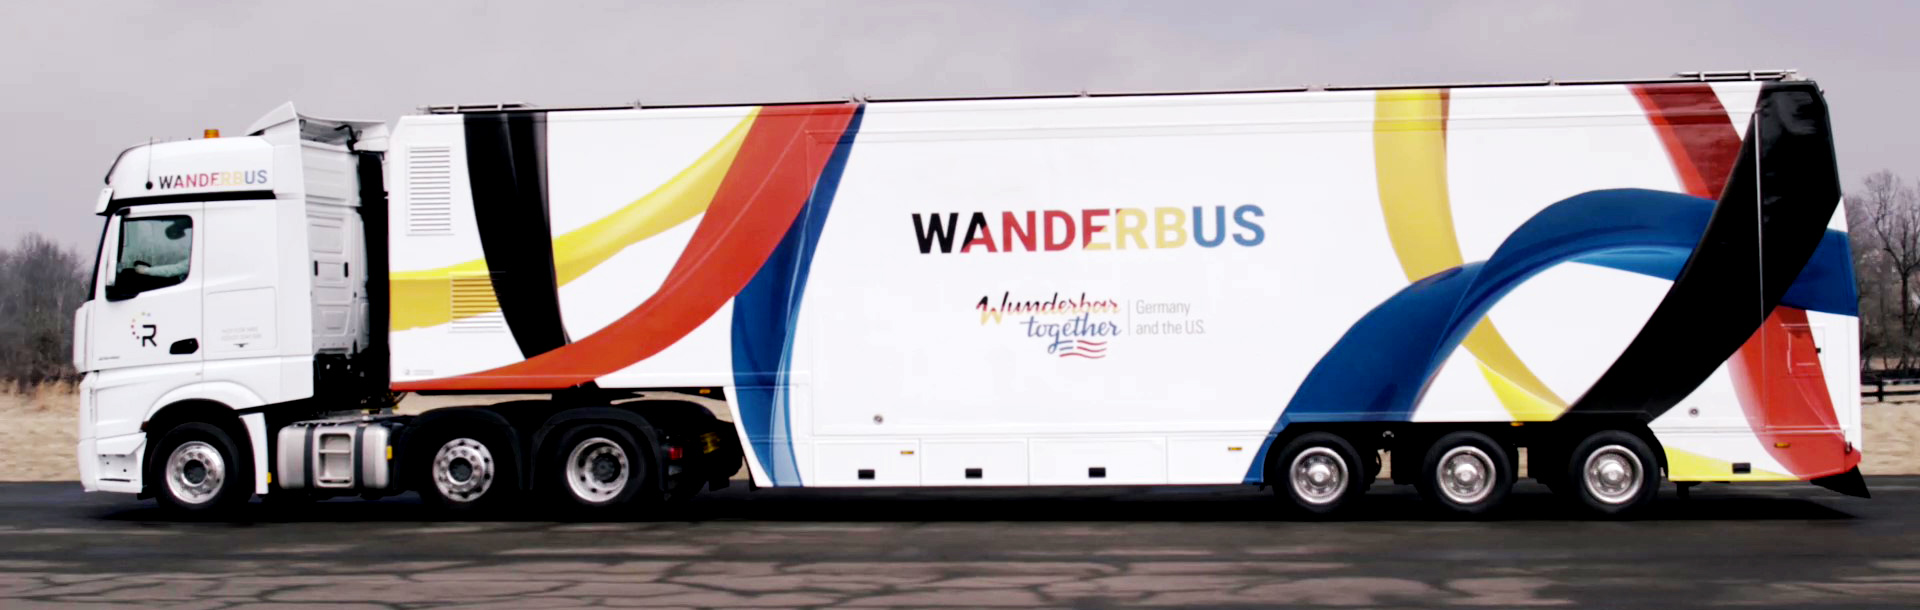 WanderbUS video